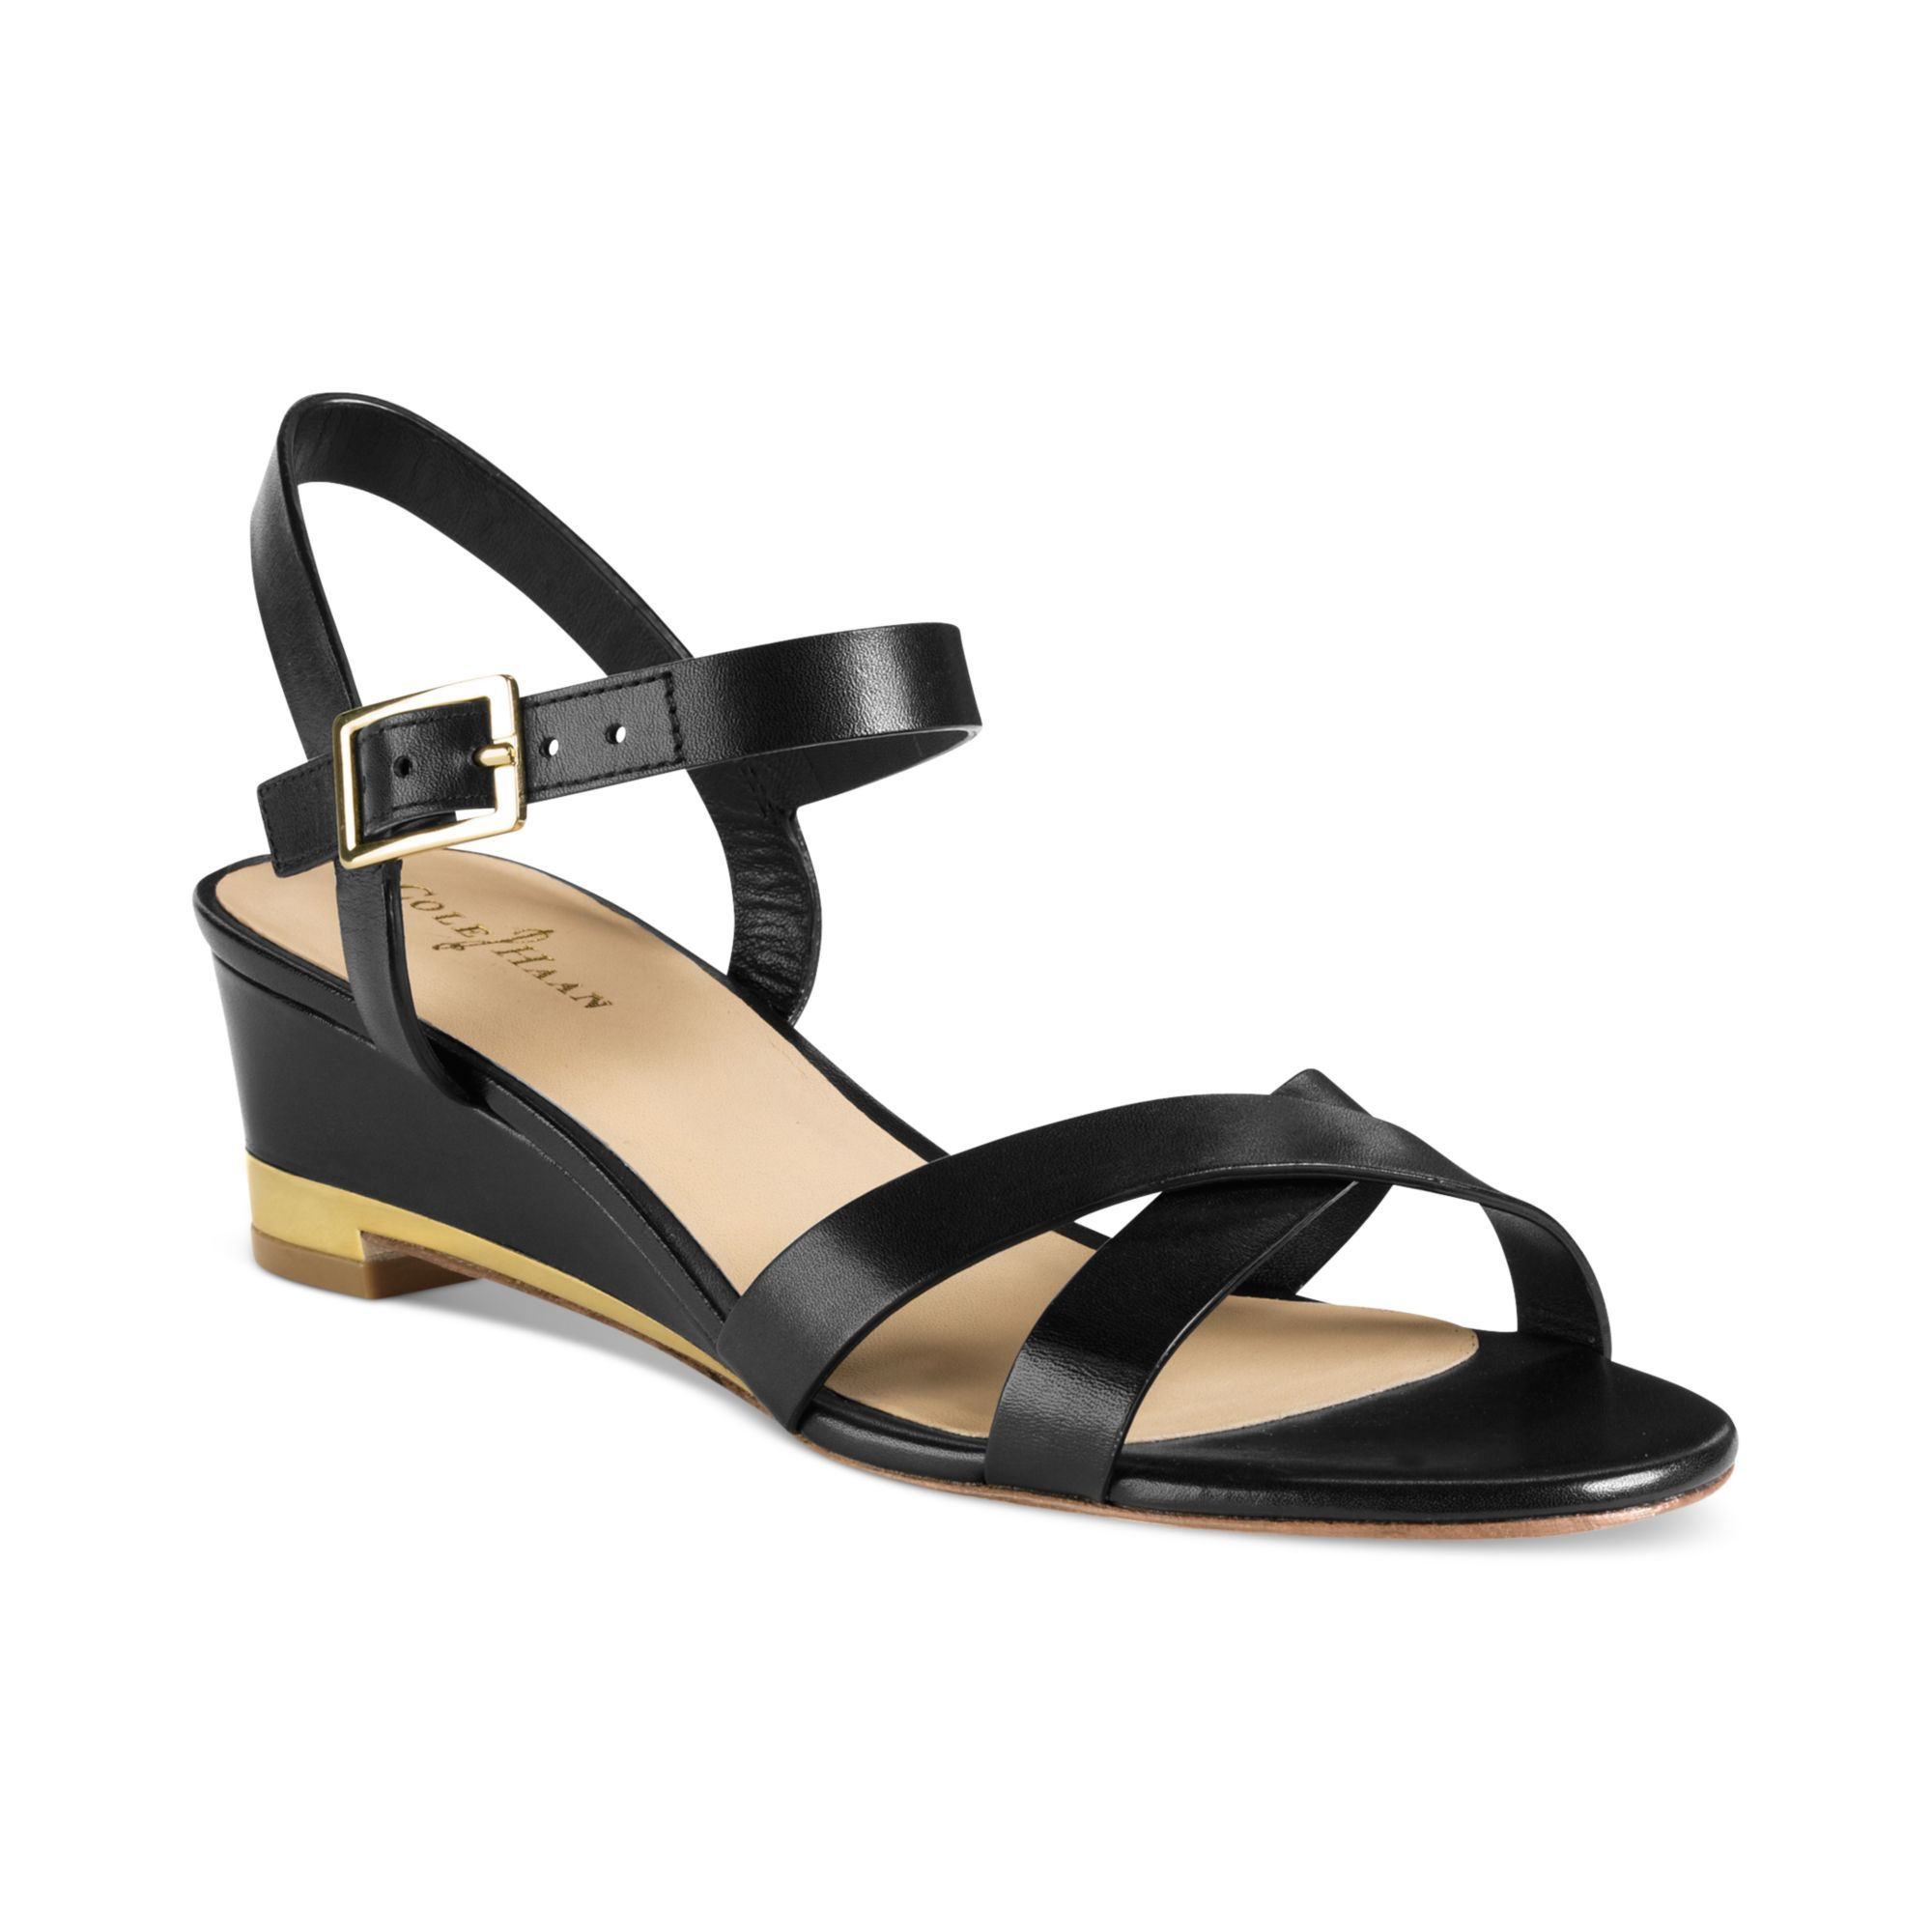 Cole haan black melrose low wedge sandals product